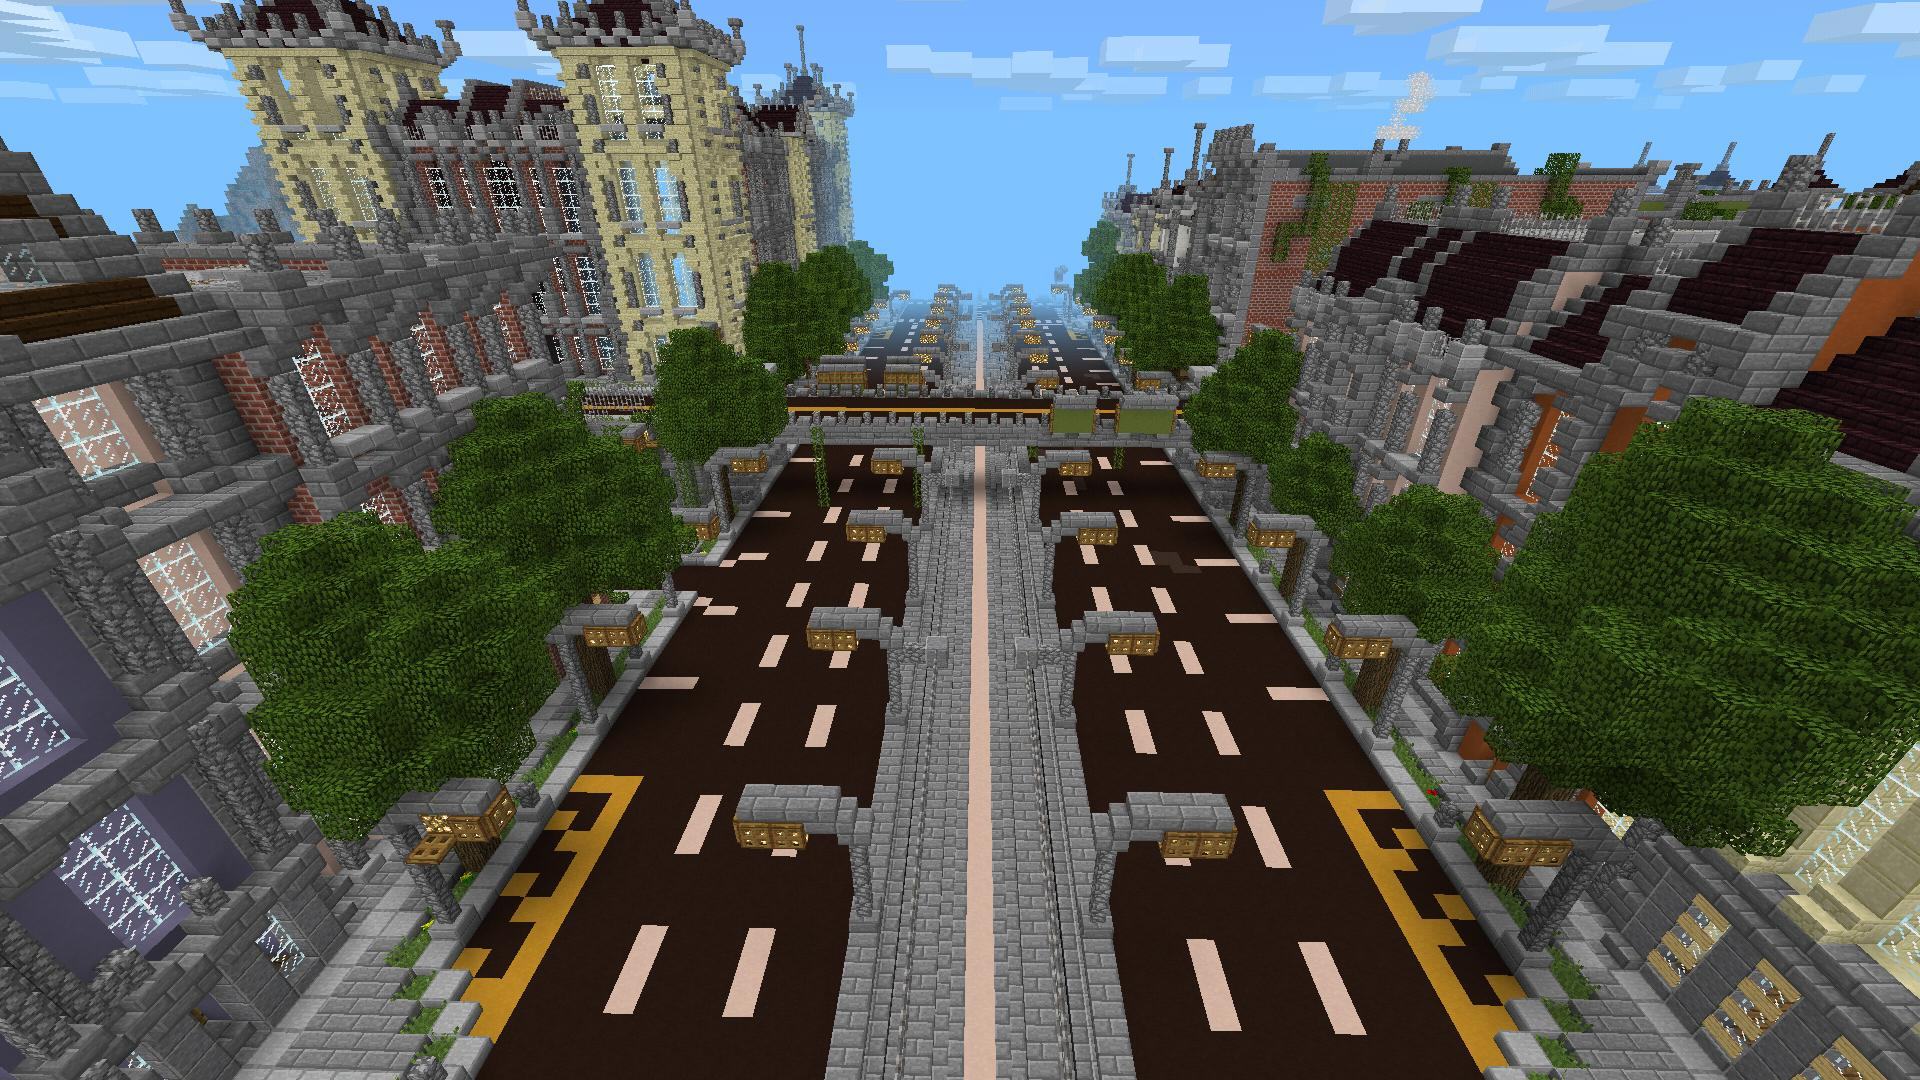 New Silverhills City Minecraft Pocket Edition Maps Mods - Coole maps fur minecraft pe